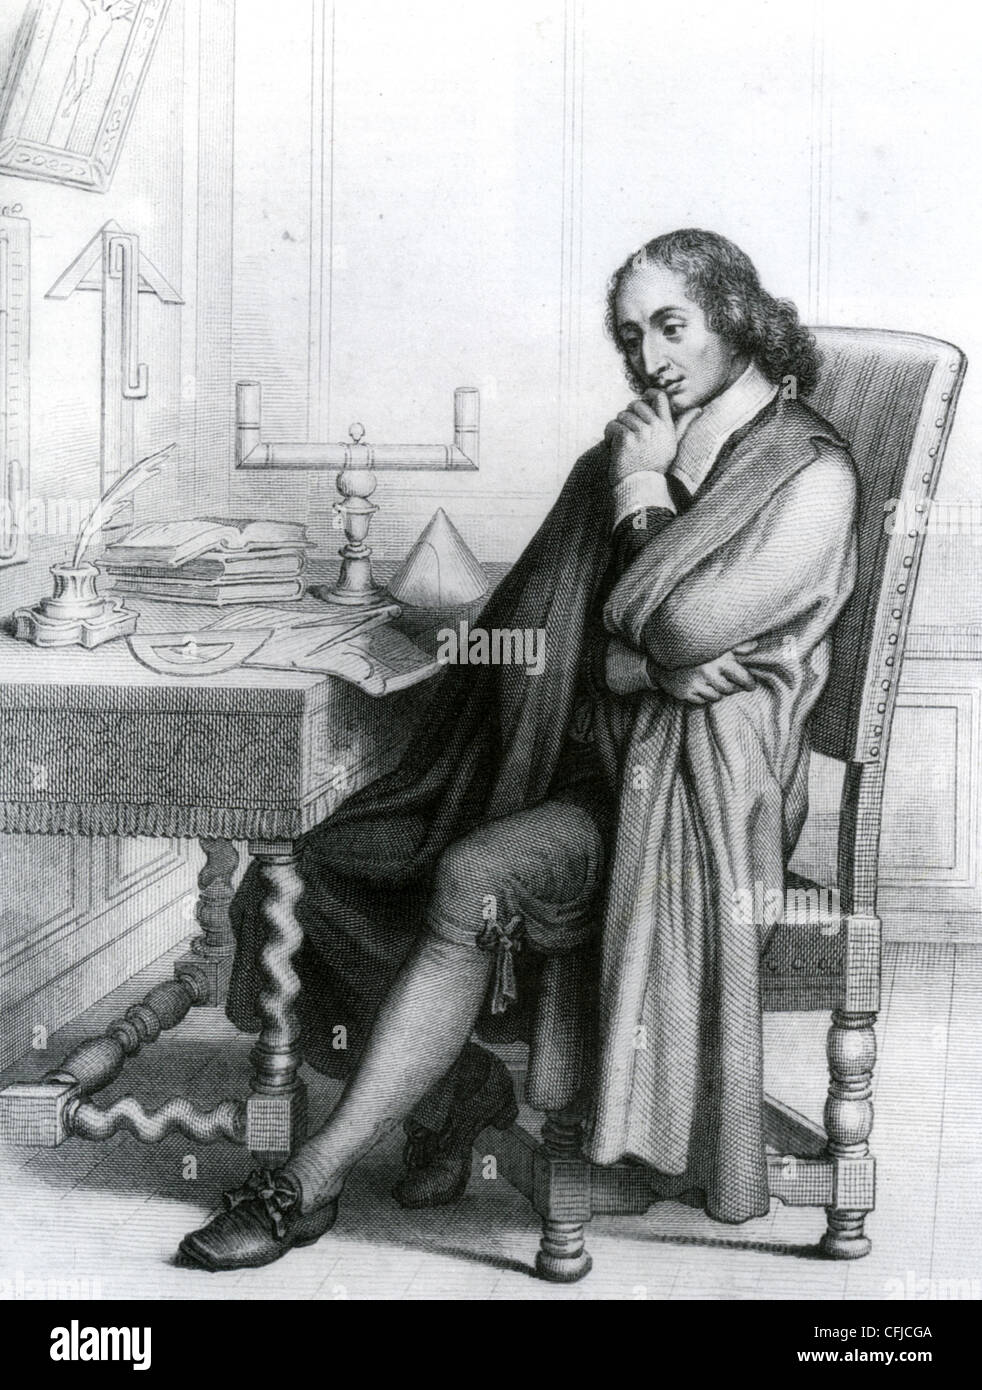 BLAISE PASCAL (1623-1662) French mathematician and philosopher